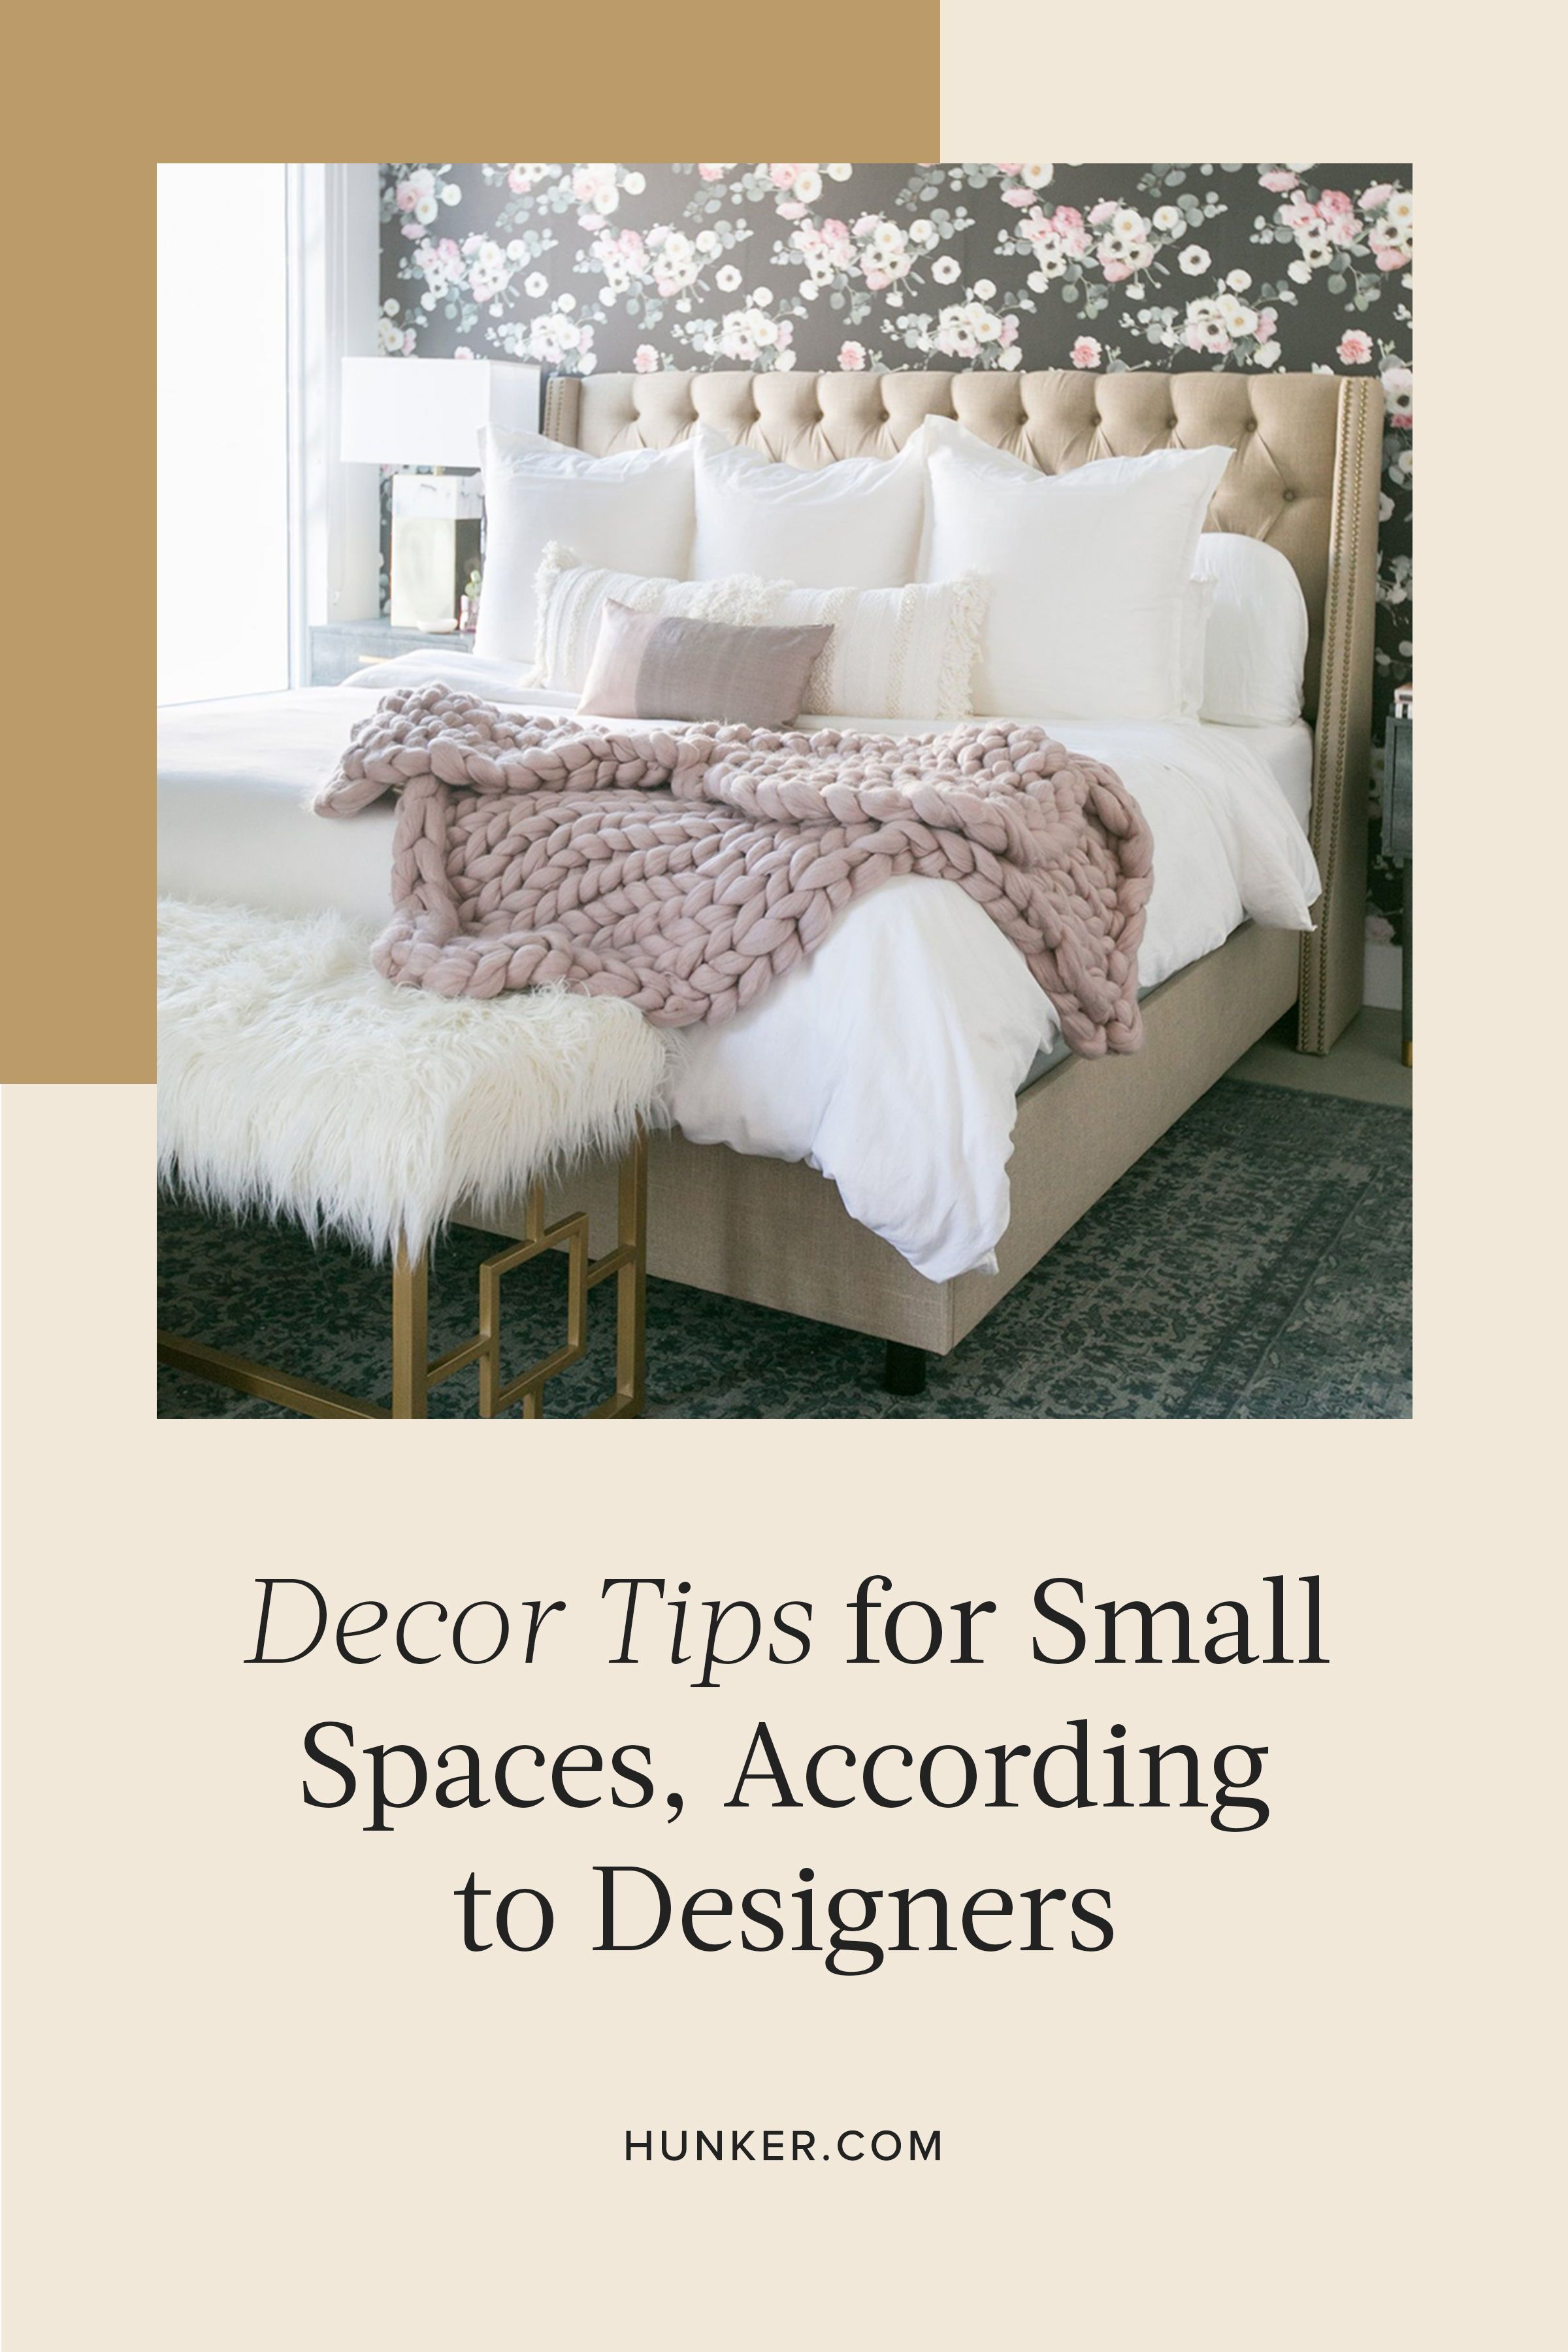 We caught up with a few of our favorite (and heavily re-pinned) Decorist designers to ask them to spill their secrets for creating a high-design vibe with a low-impact footprint. #hunkerhome #decor #homedecor #decortips #decorideas